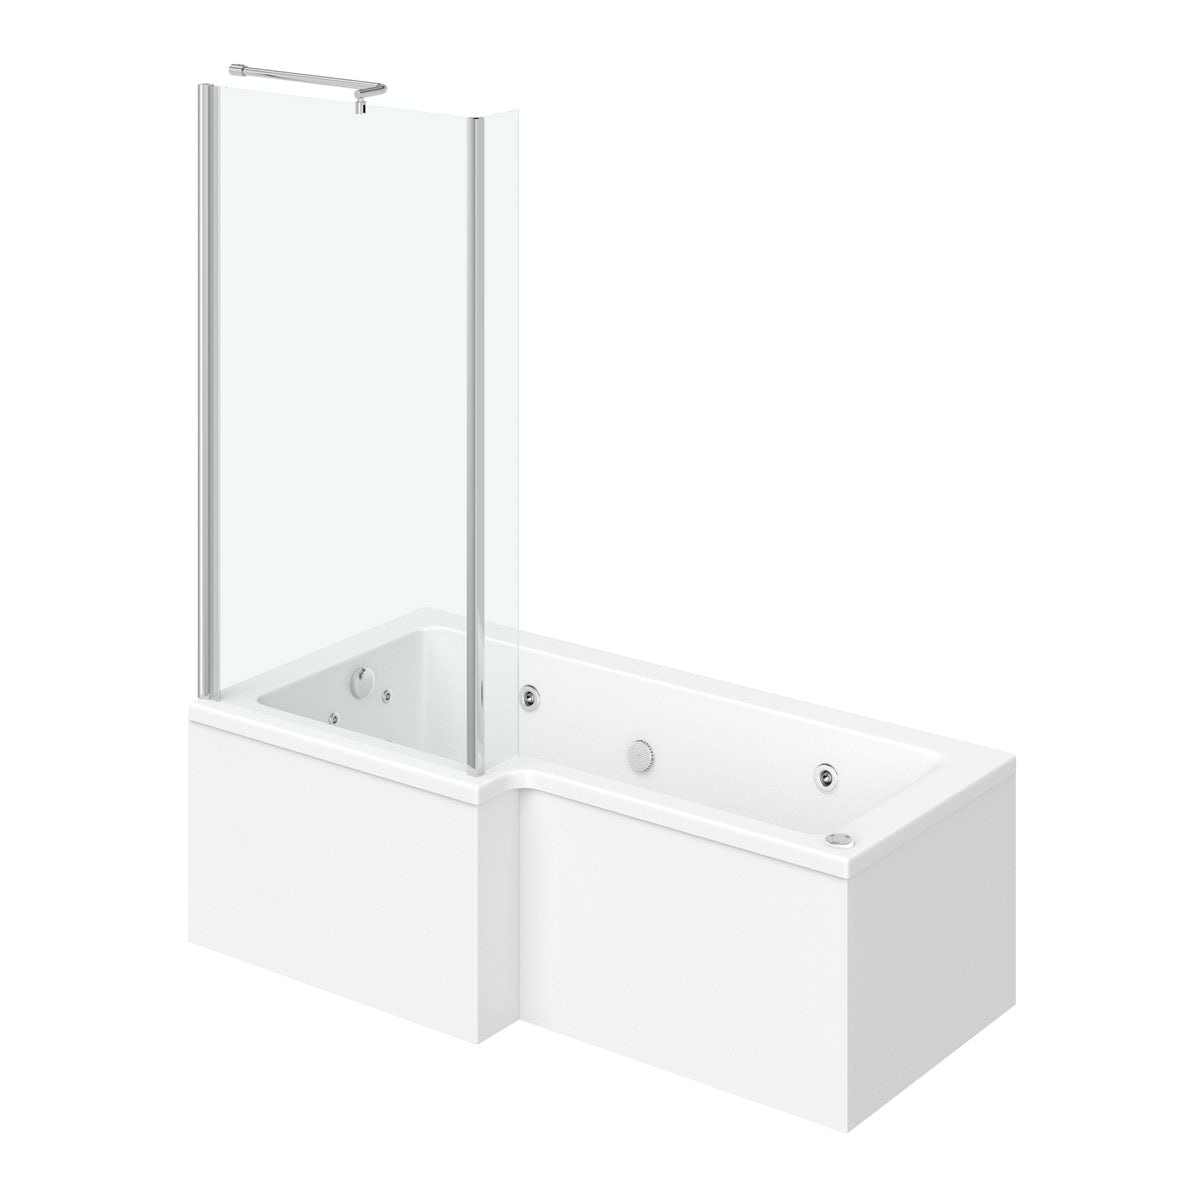 L shaped left handed 12 jet whirlpool shower bath with front panel and screen